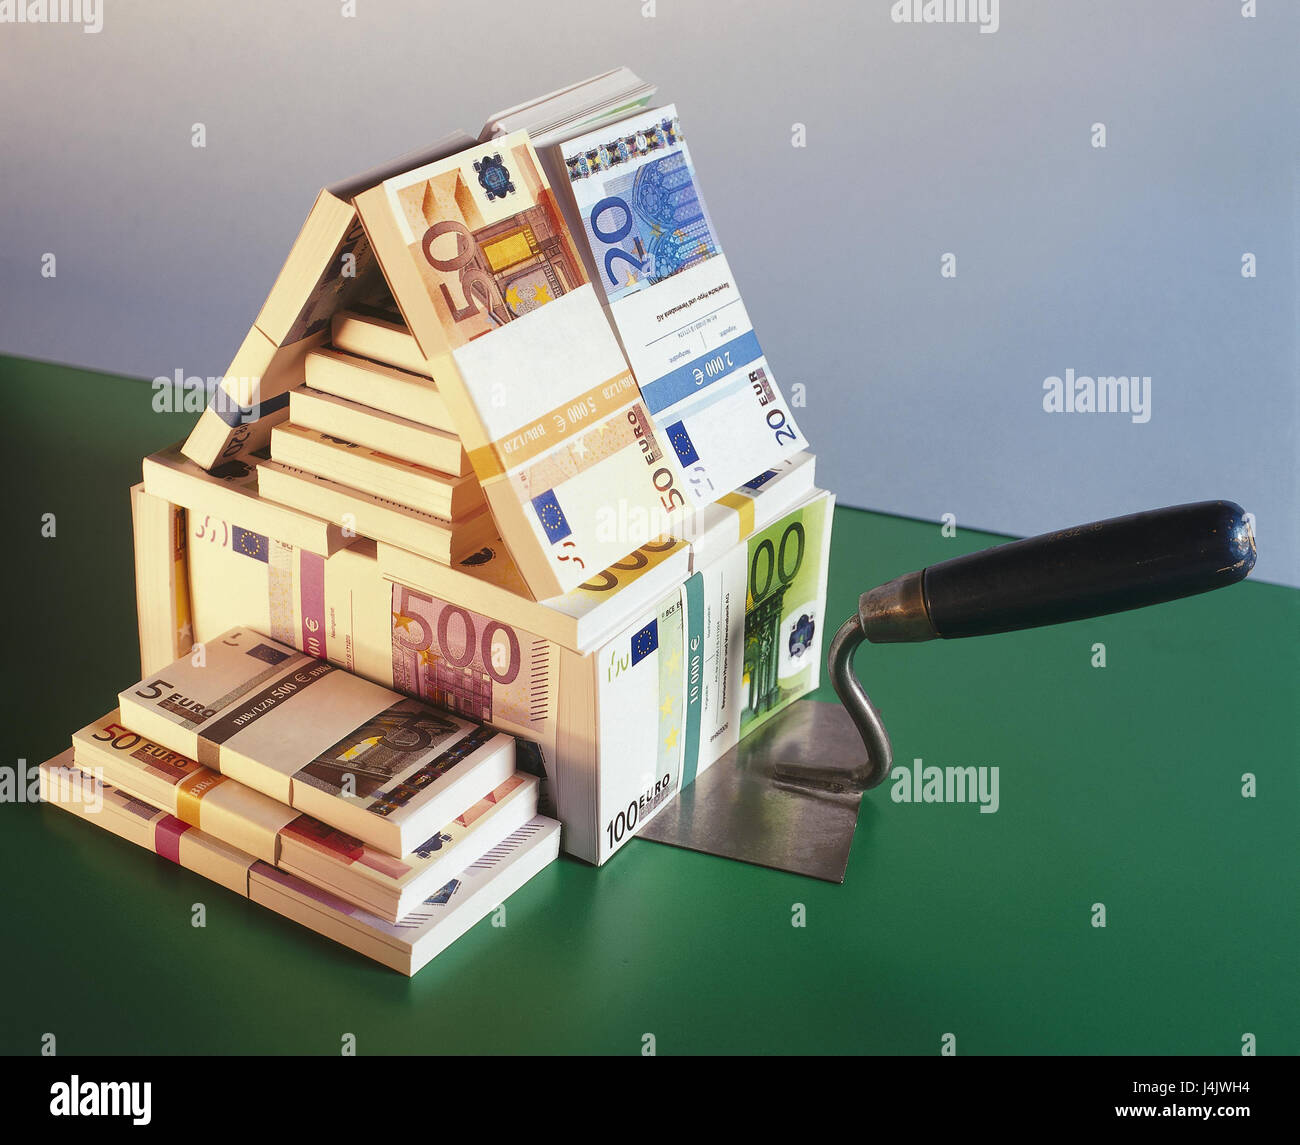 Icon building cost bank notes object photography still for Costs associated with building a house